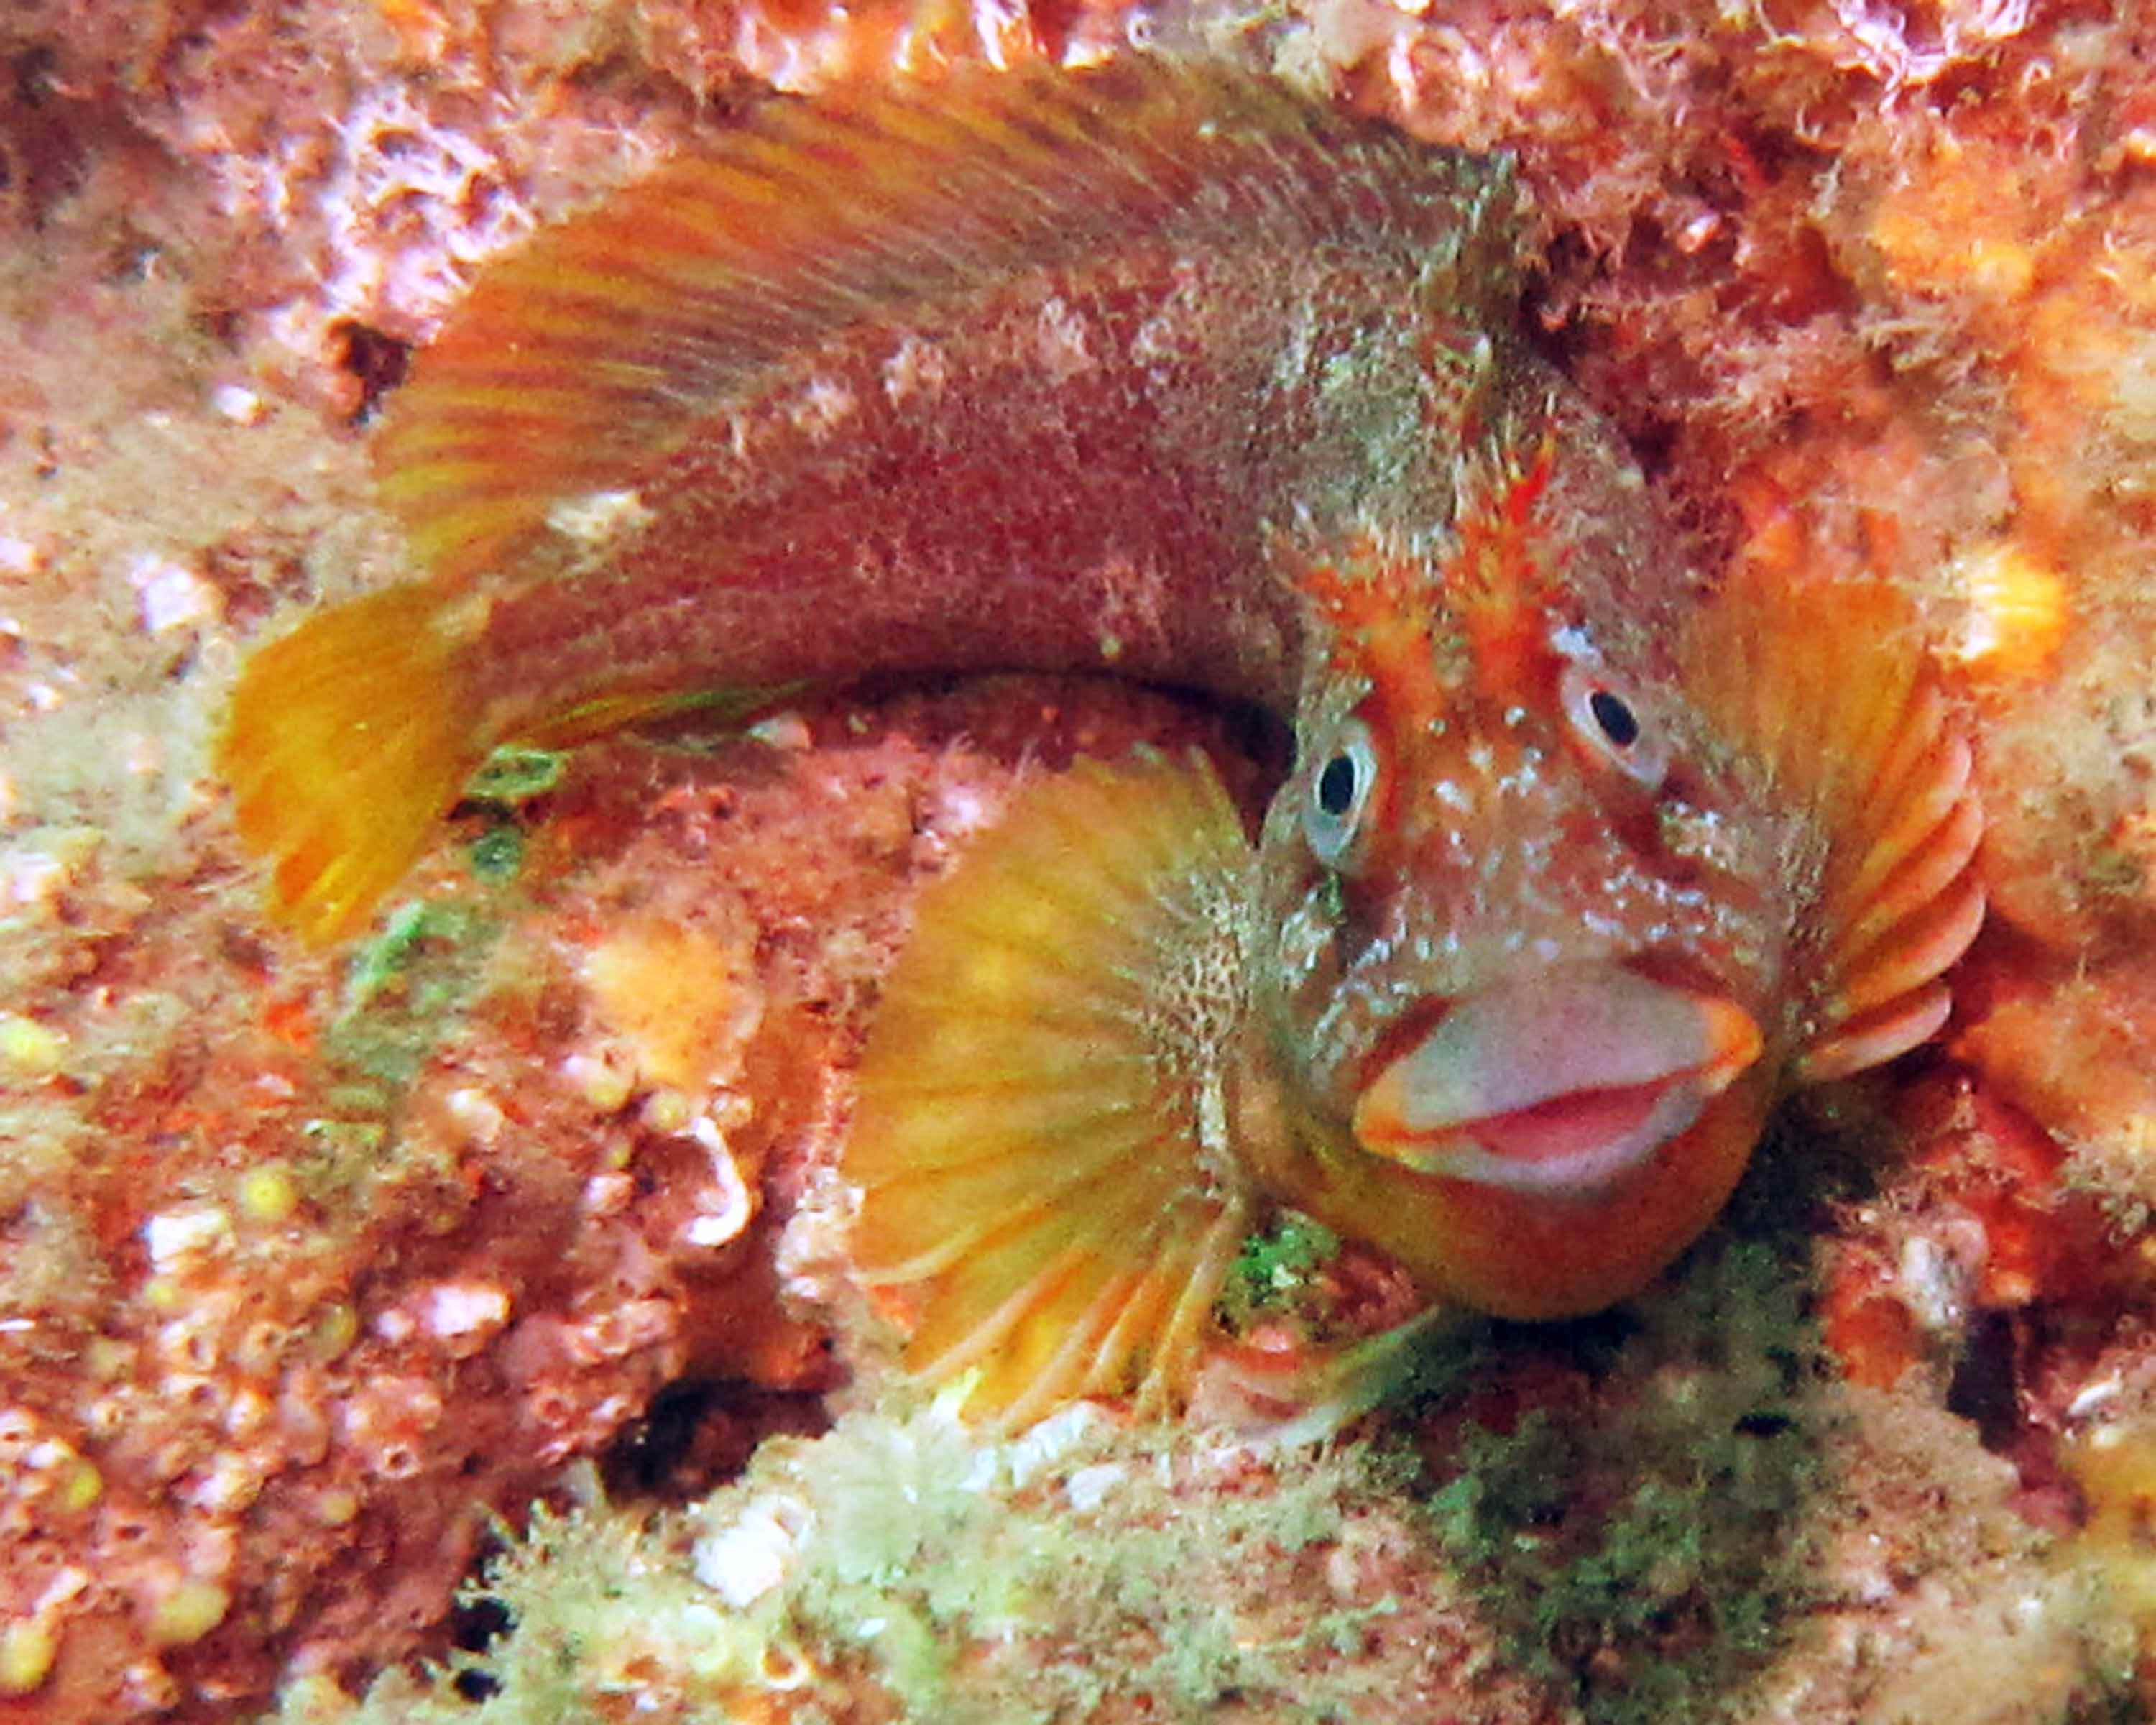 Tompot Blenny small